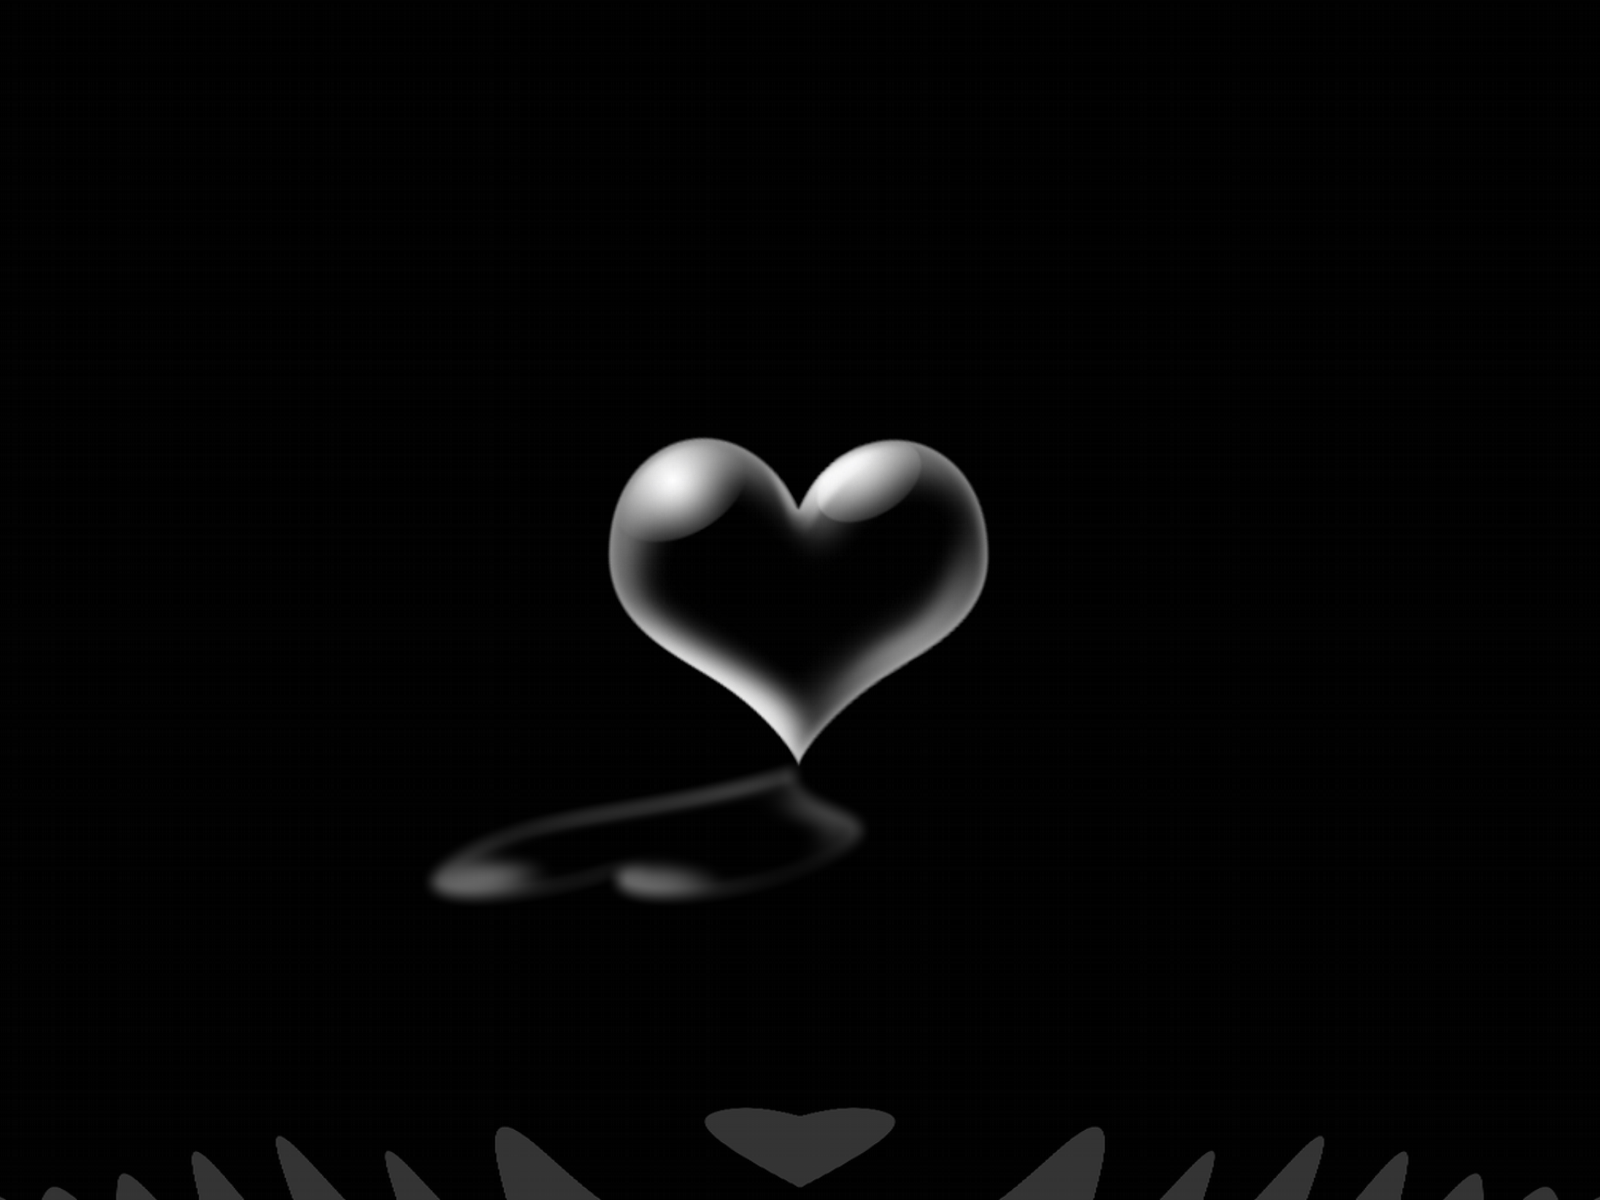 Love Wallpapers Black : HD Heart Wallpapers Love Wallpapers car,Disney cartoon ...